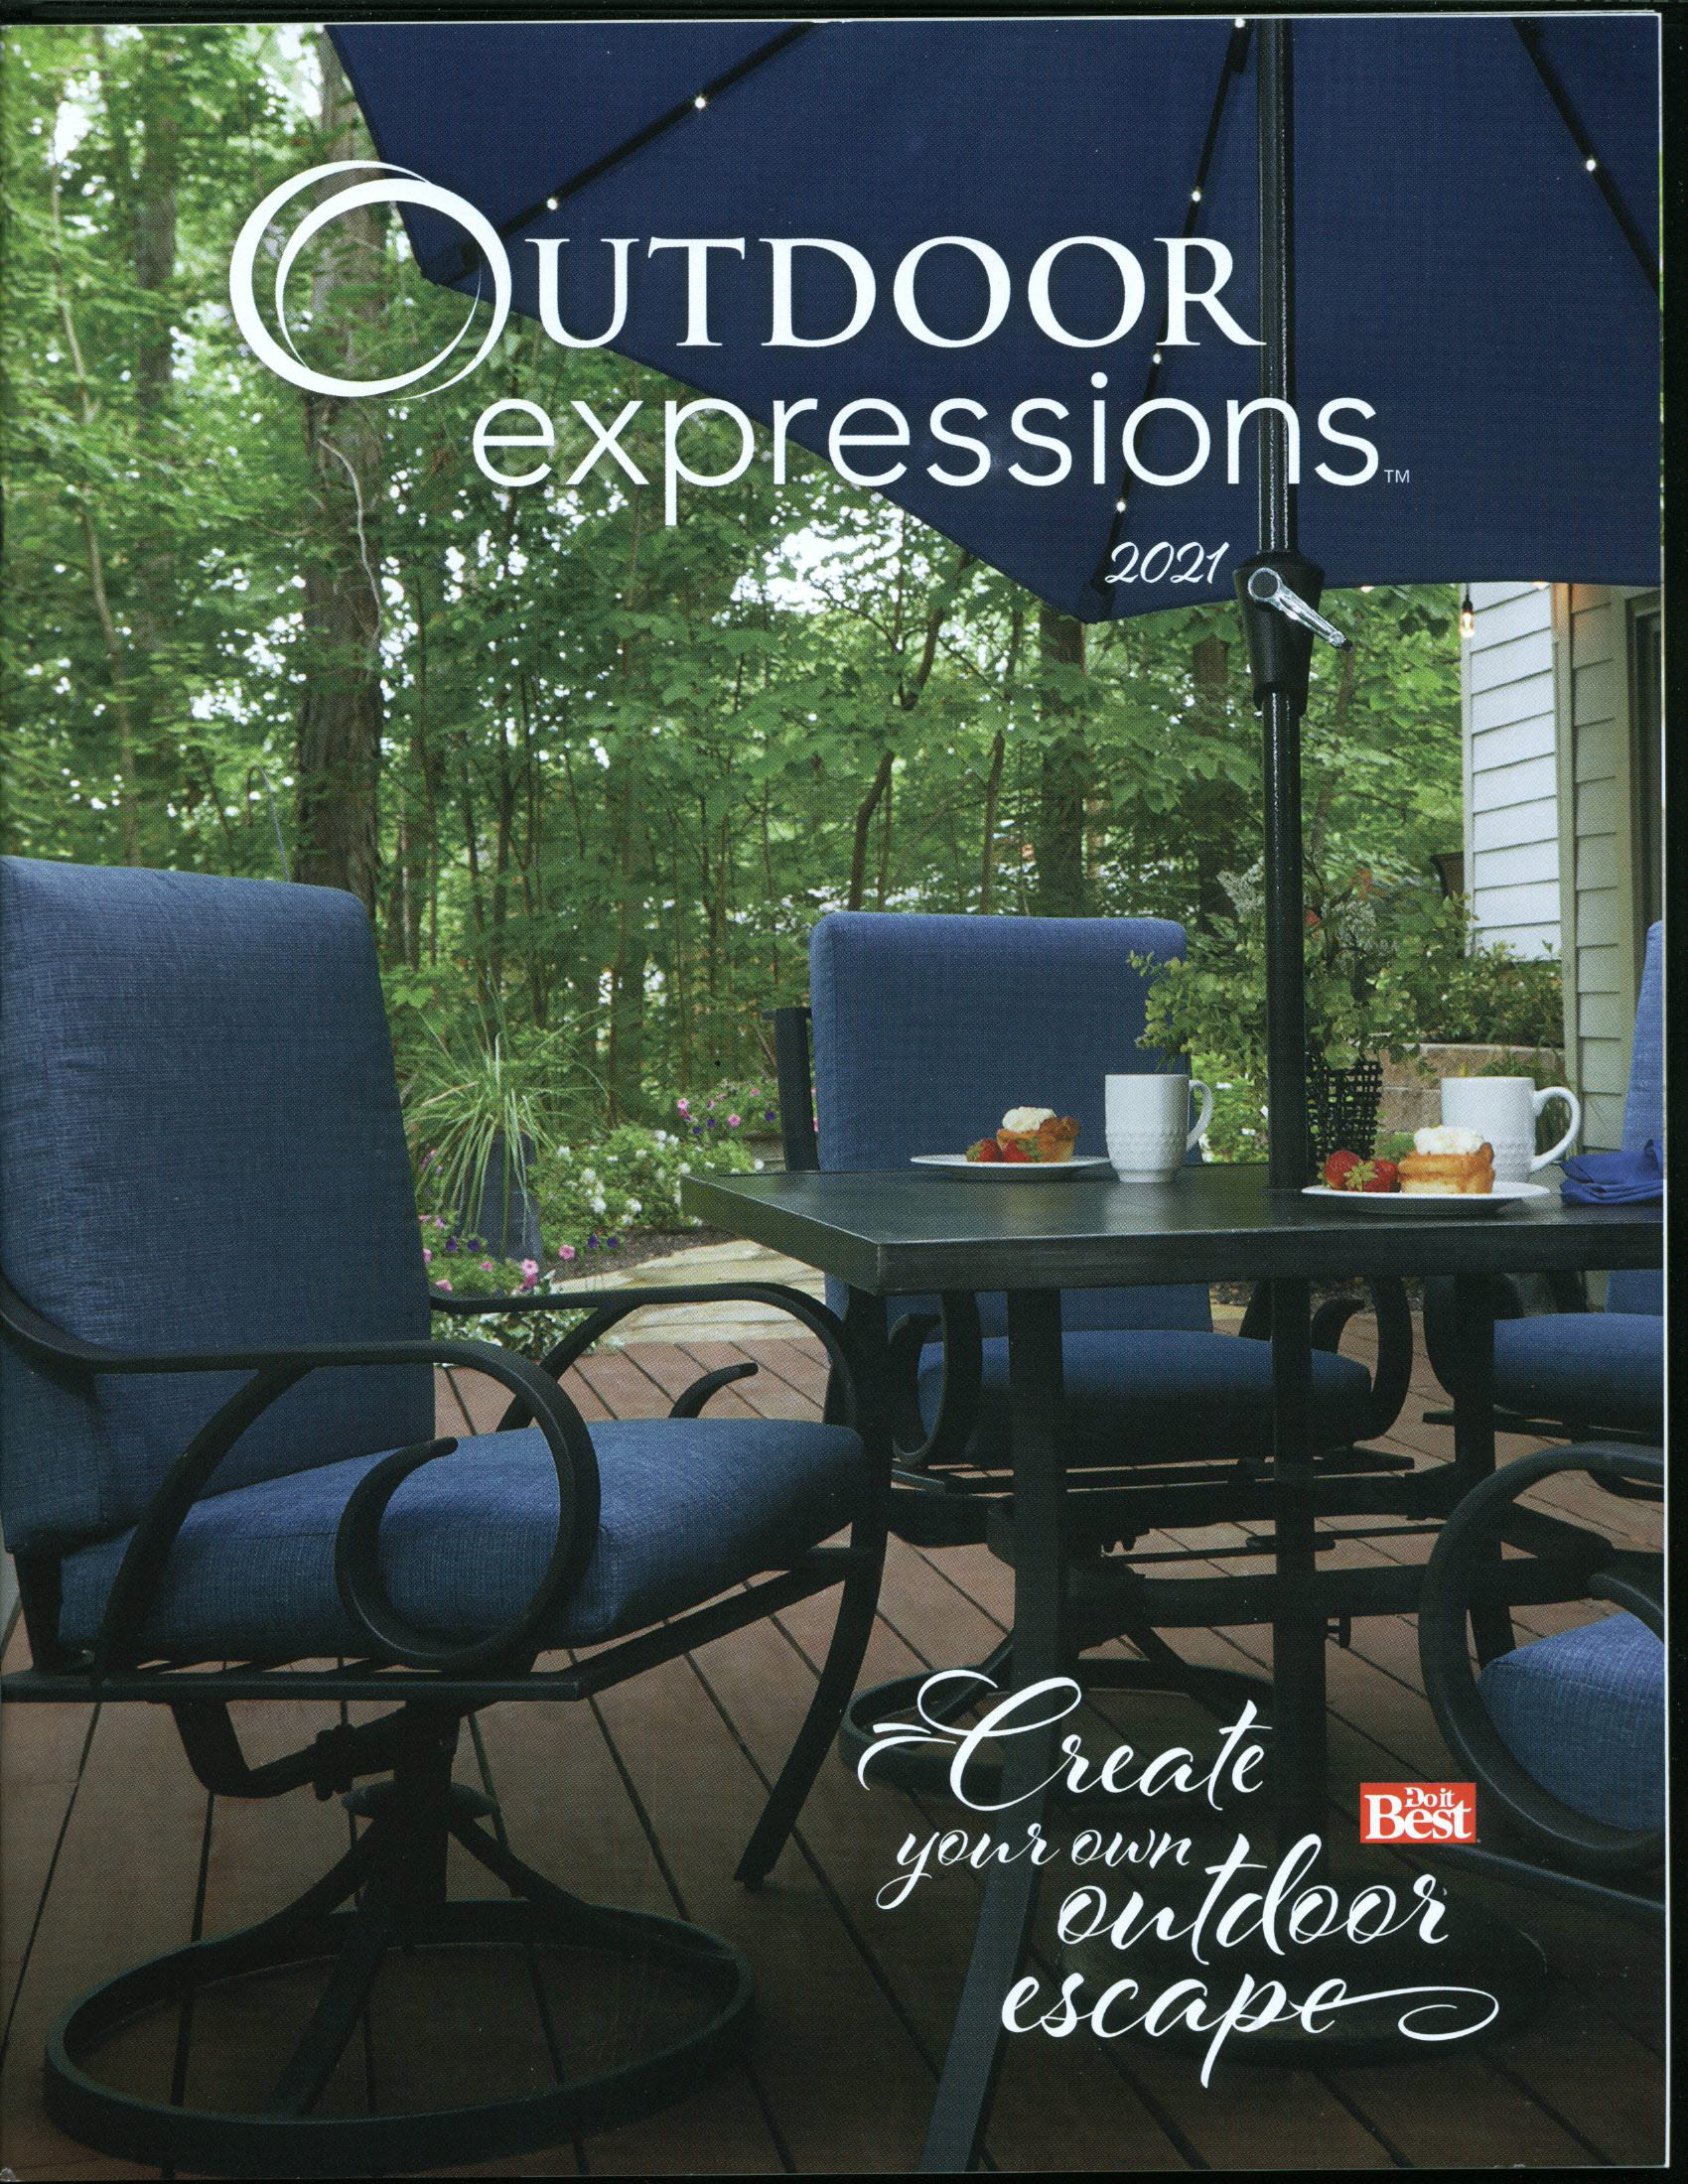 Create your own Outdoor Escape